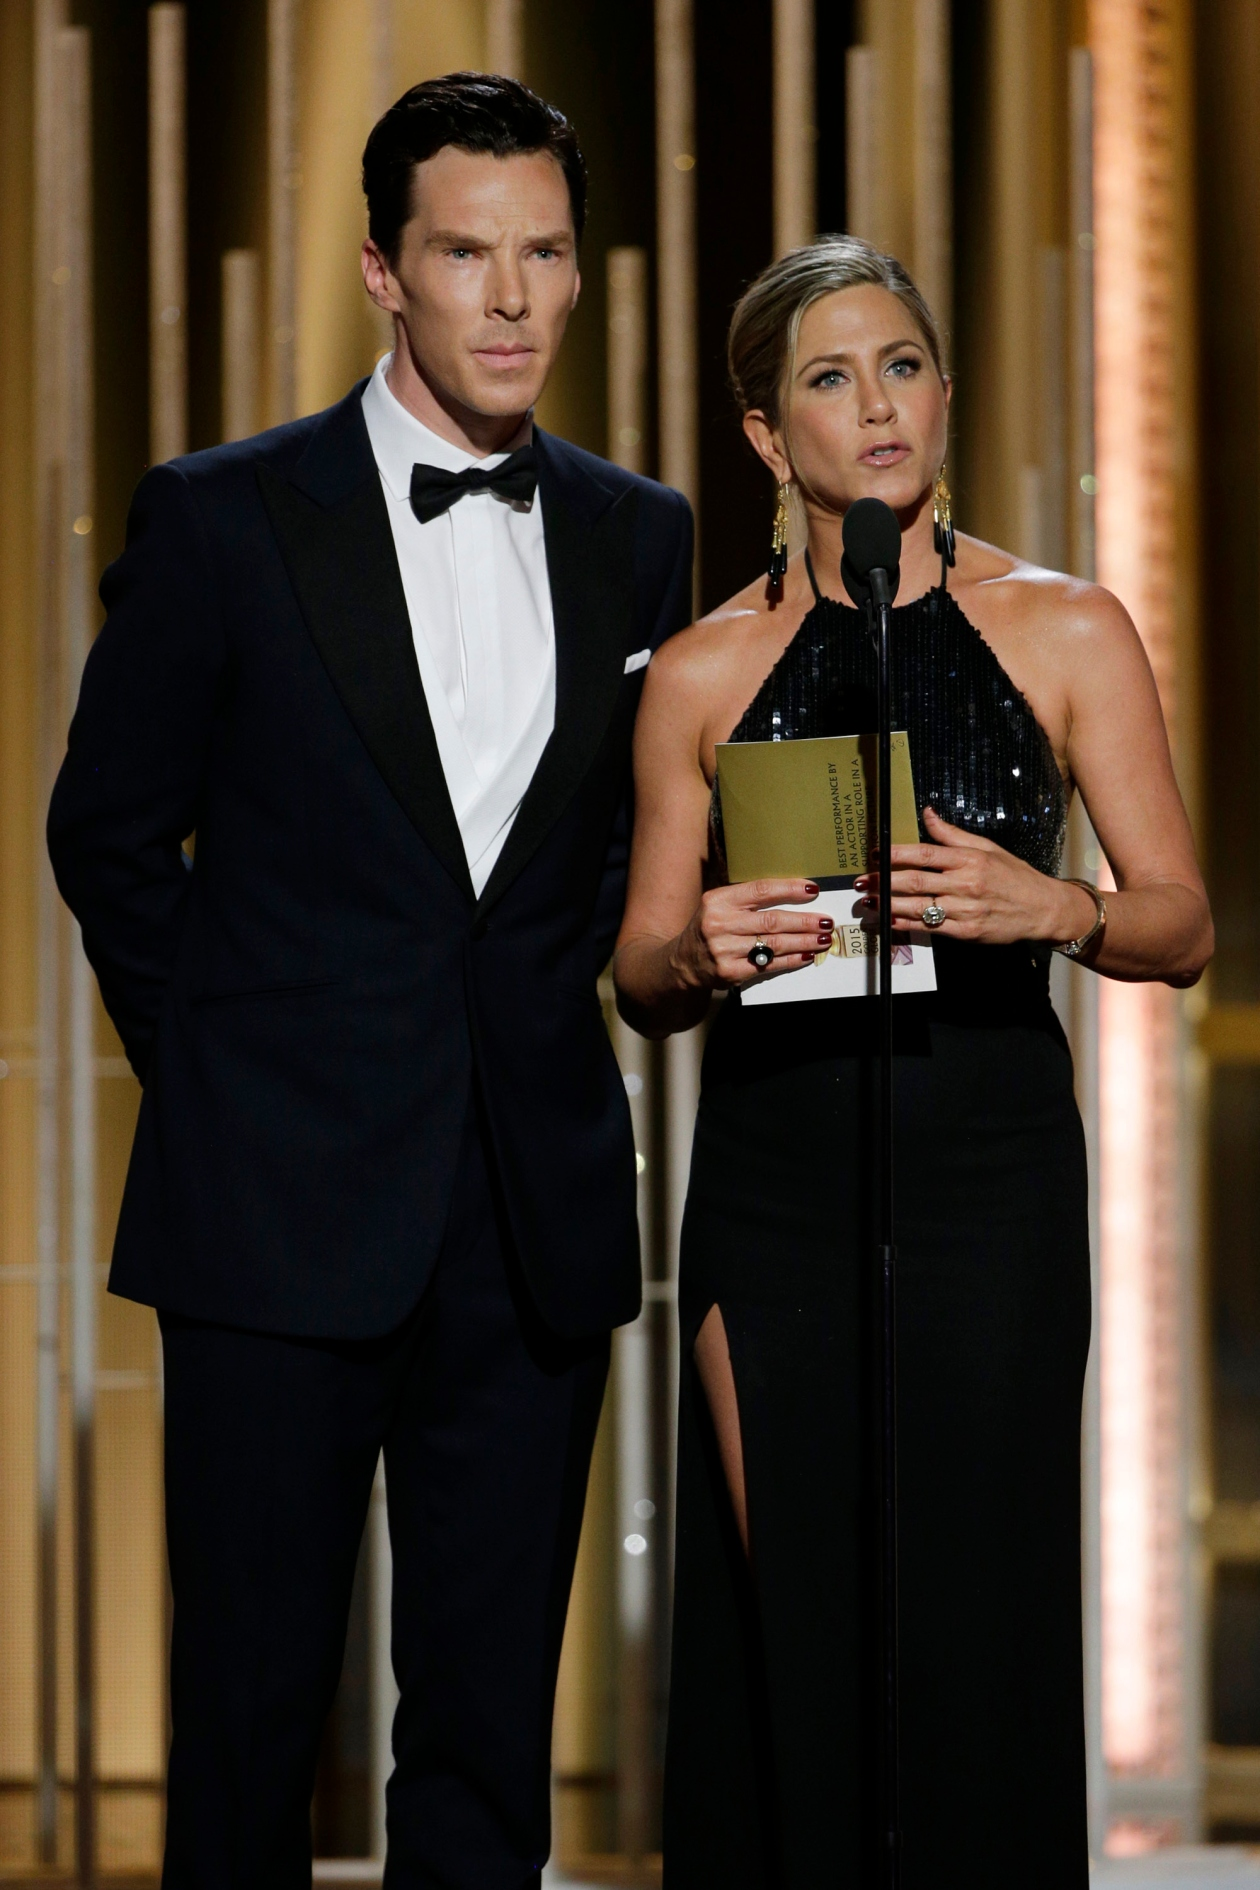 Golden Globes 2015's 20 Best and Worst Moments – Rolling Stone